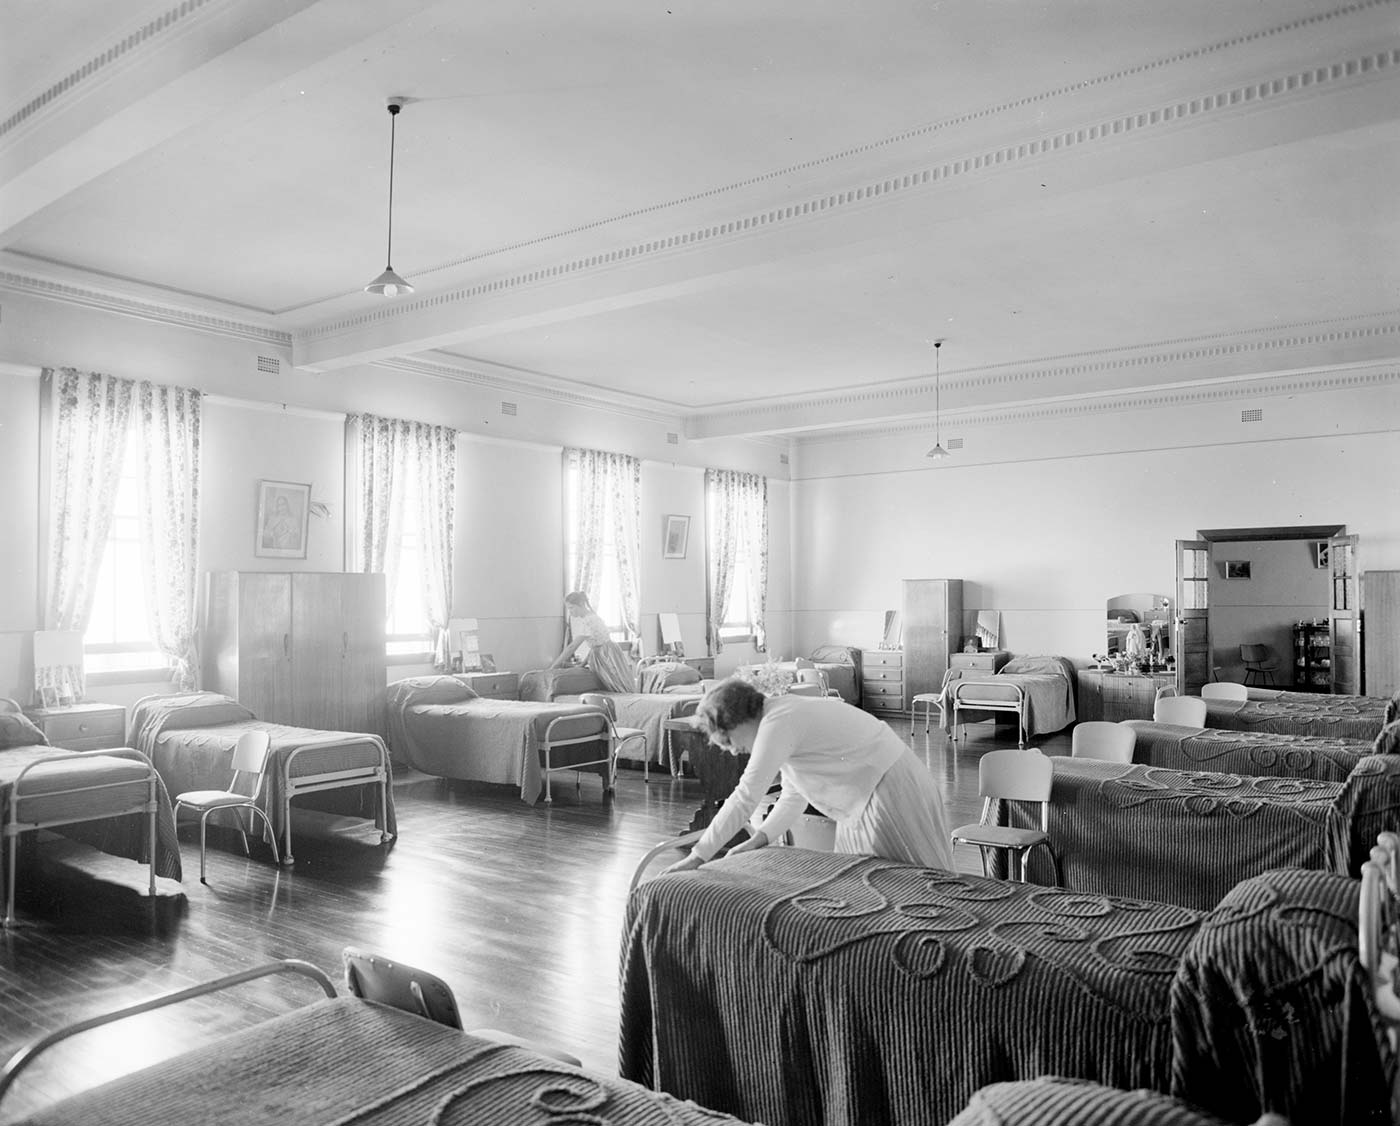 Black and white image showing a light, airy room with two rows of narrow, single beds along either side. A woman leans over a bed in the forground, to tuck in a bedspread. - click to view larger image